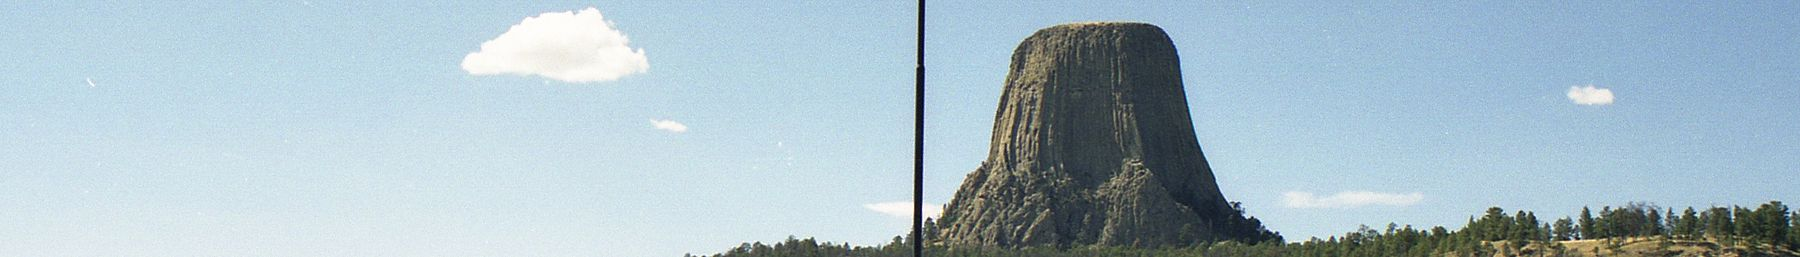 WV banner Science fiction tourism Devils Tower.jpg